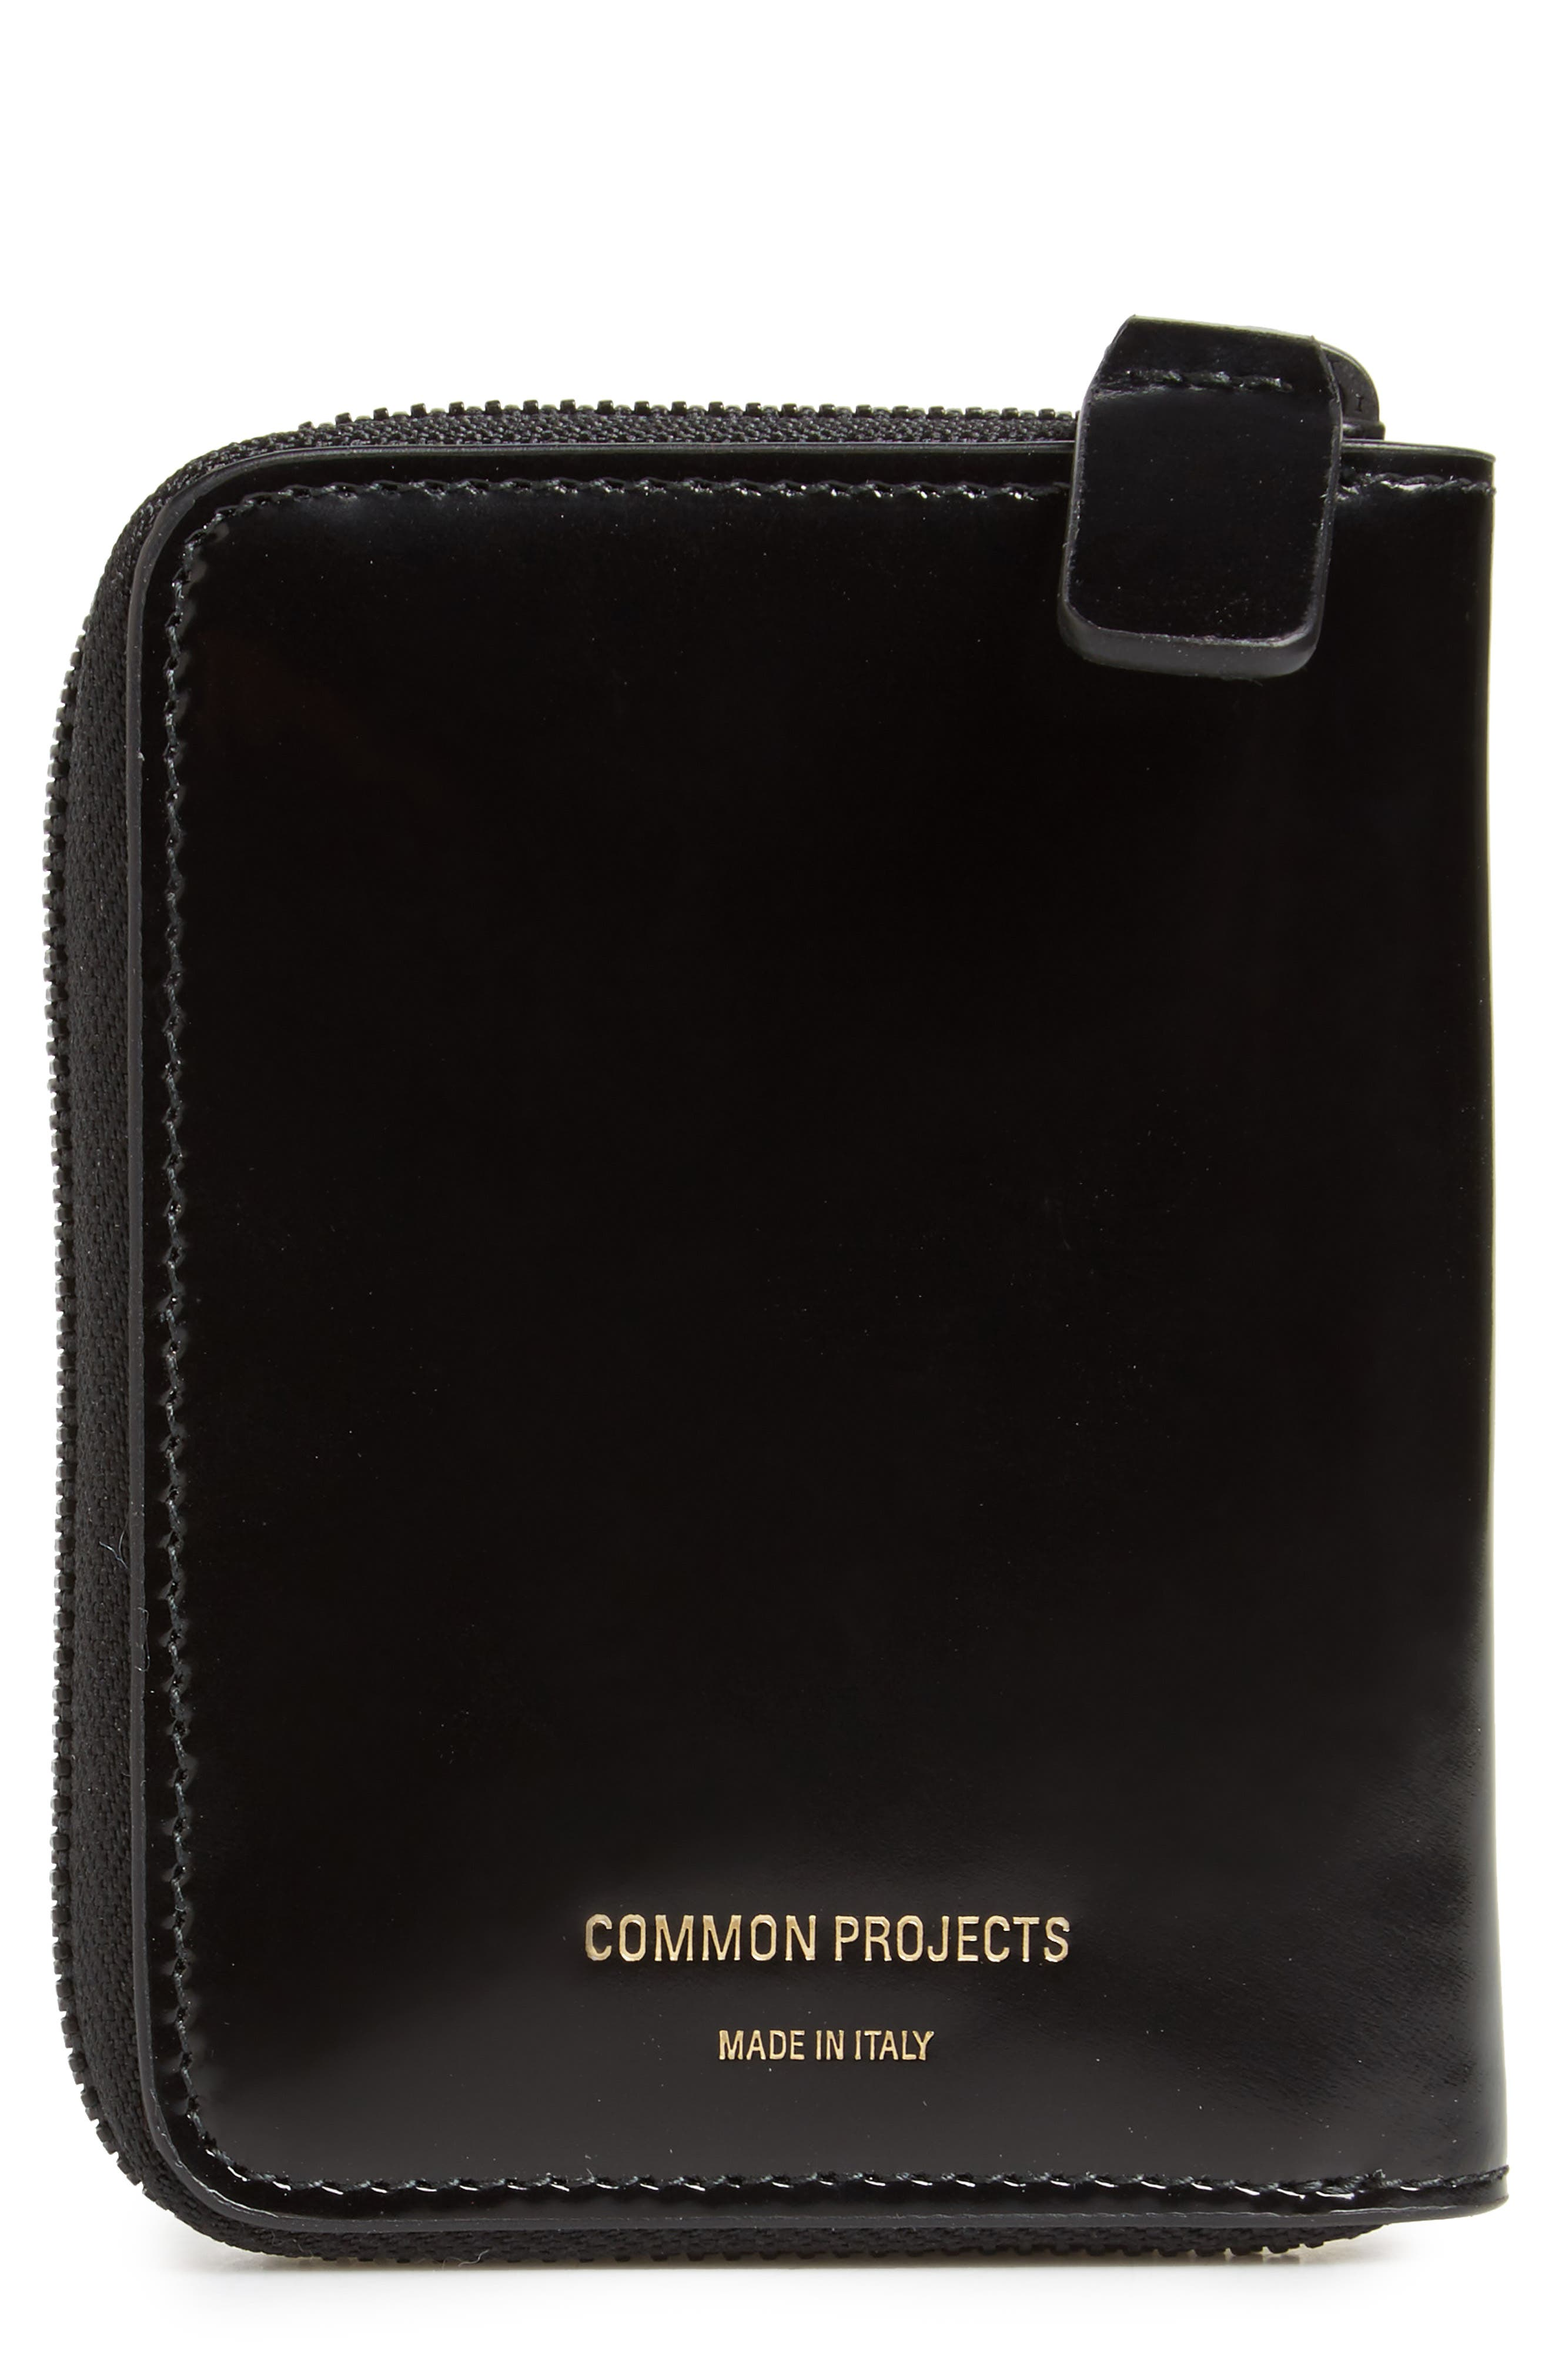 Common Projects Patent Leather Zip Wallet